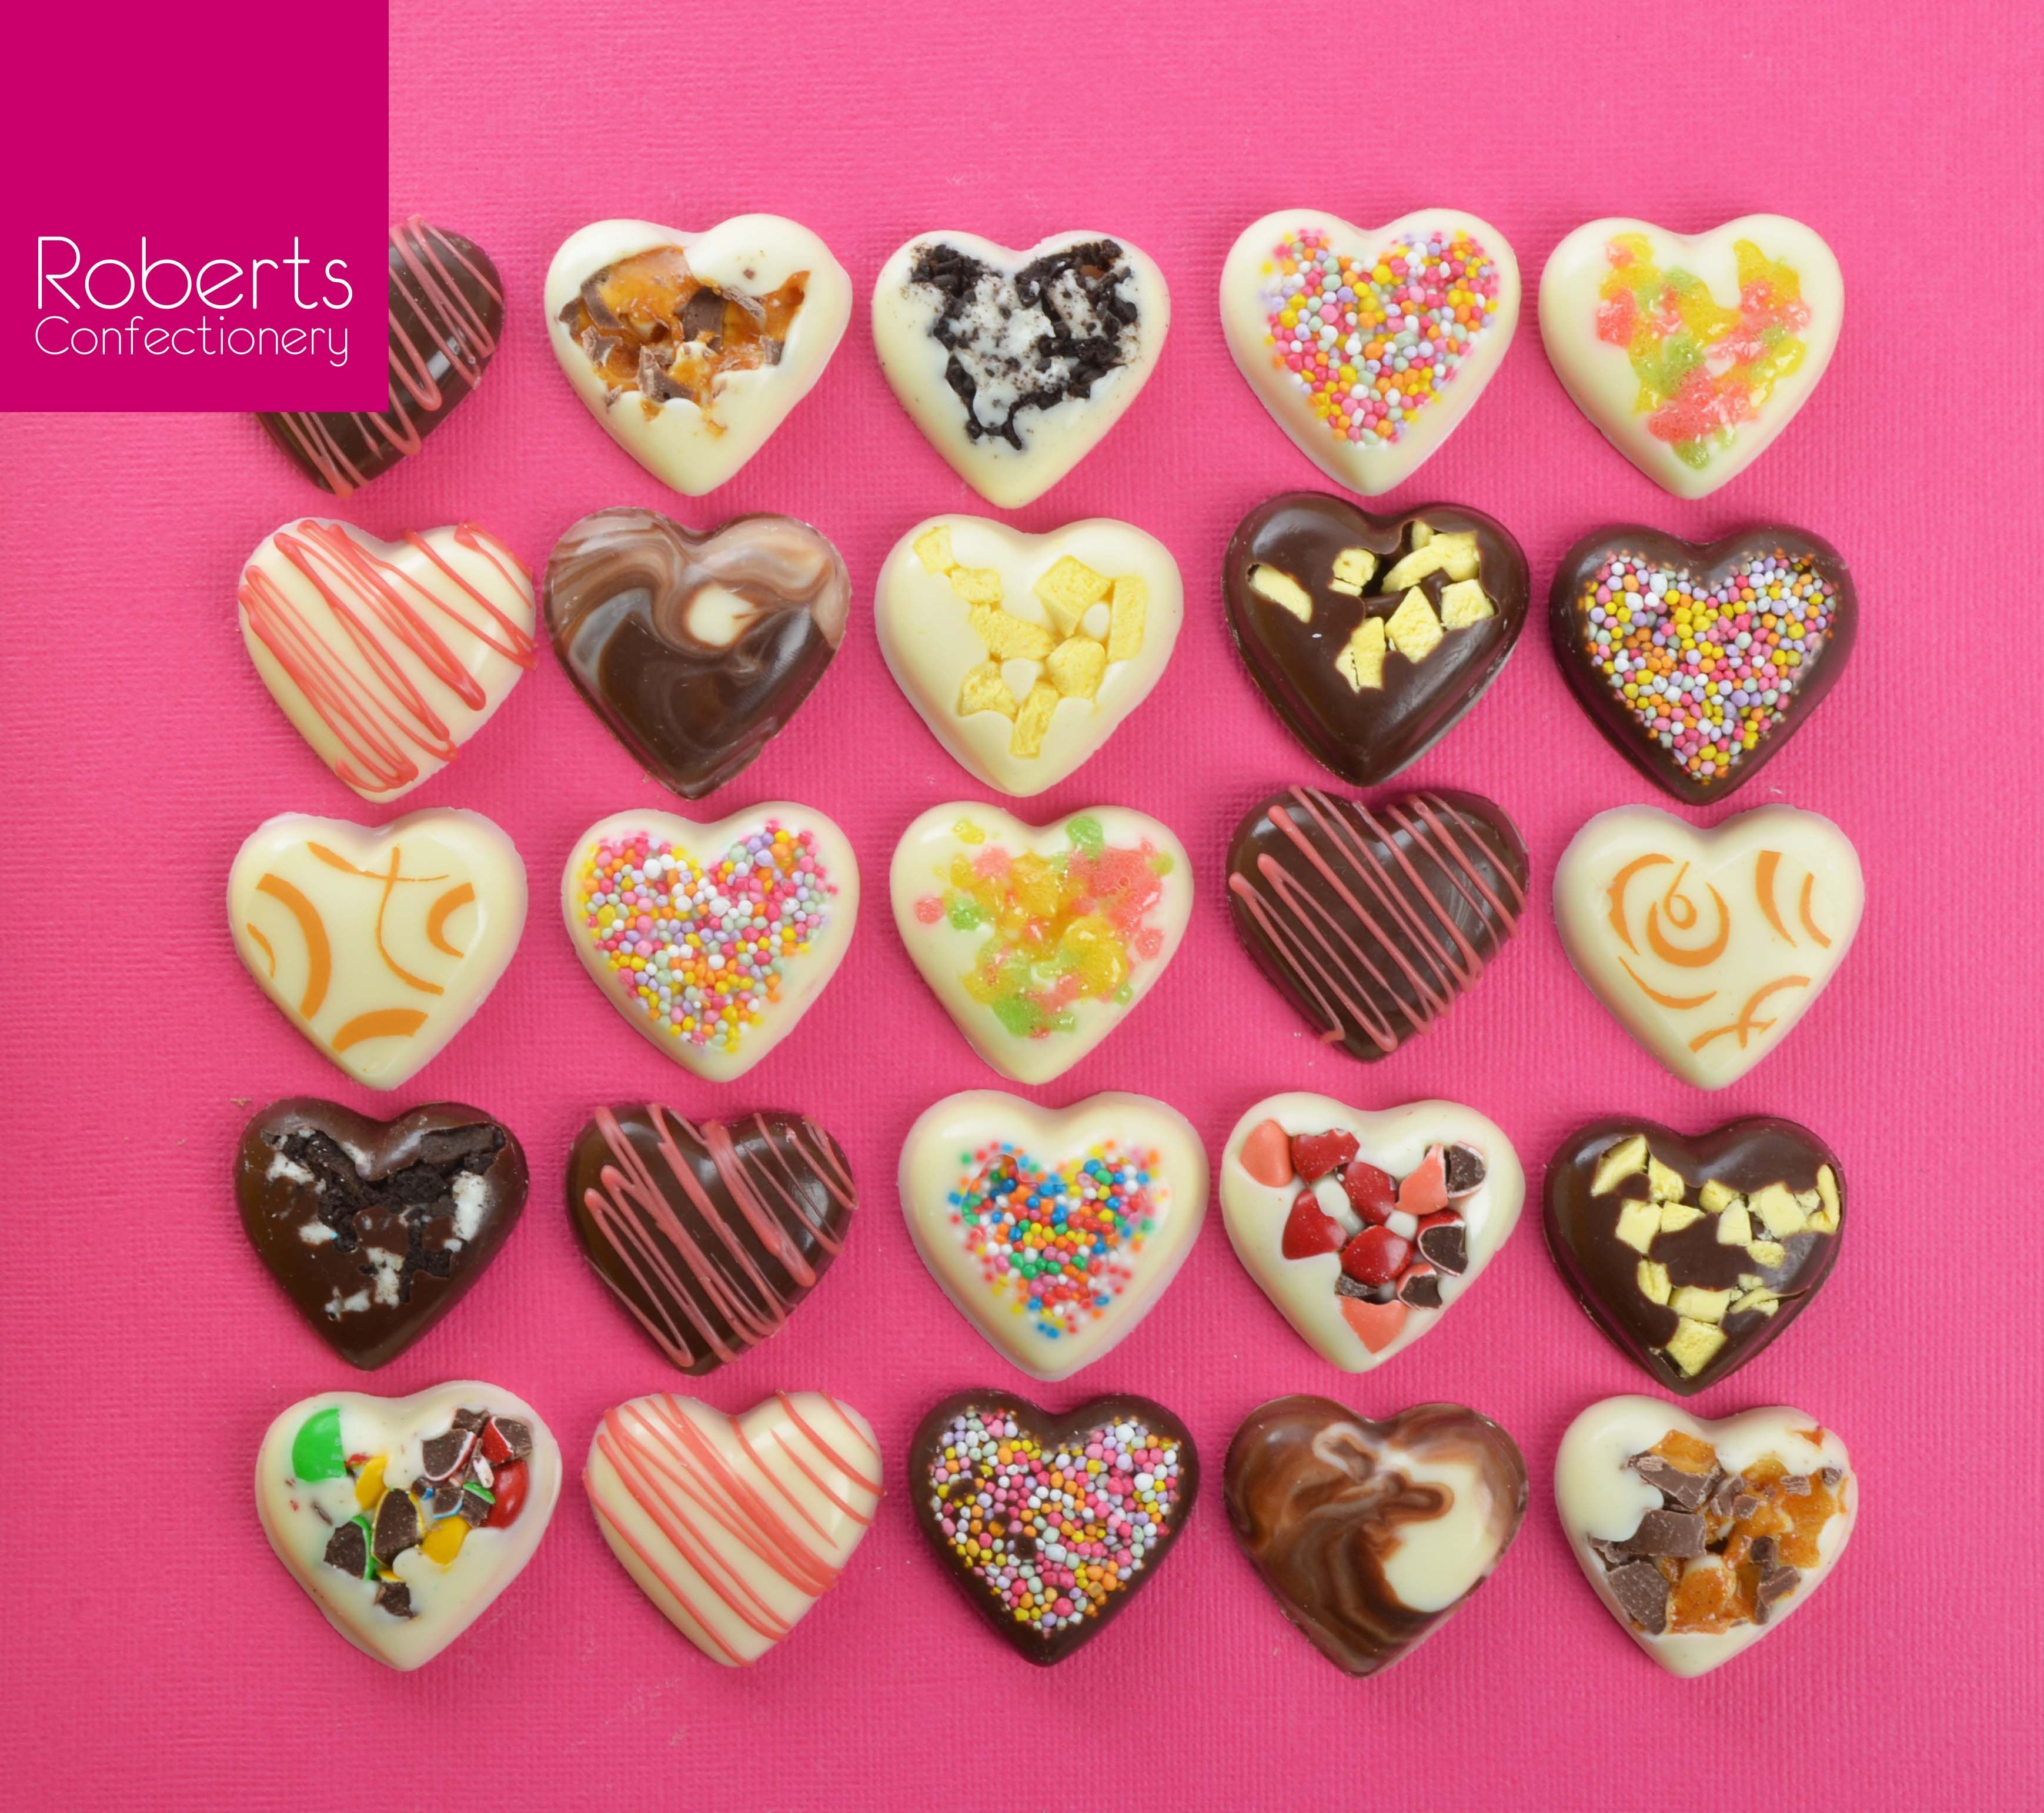 Made using Roberts Confectionery Heart Chocolate Mould & Roberts ...